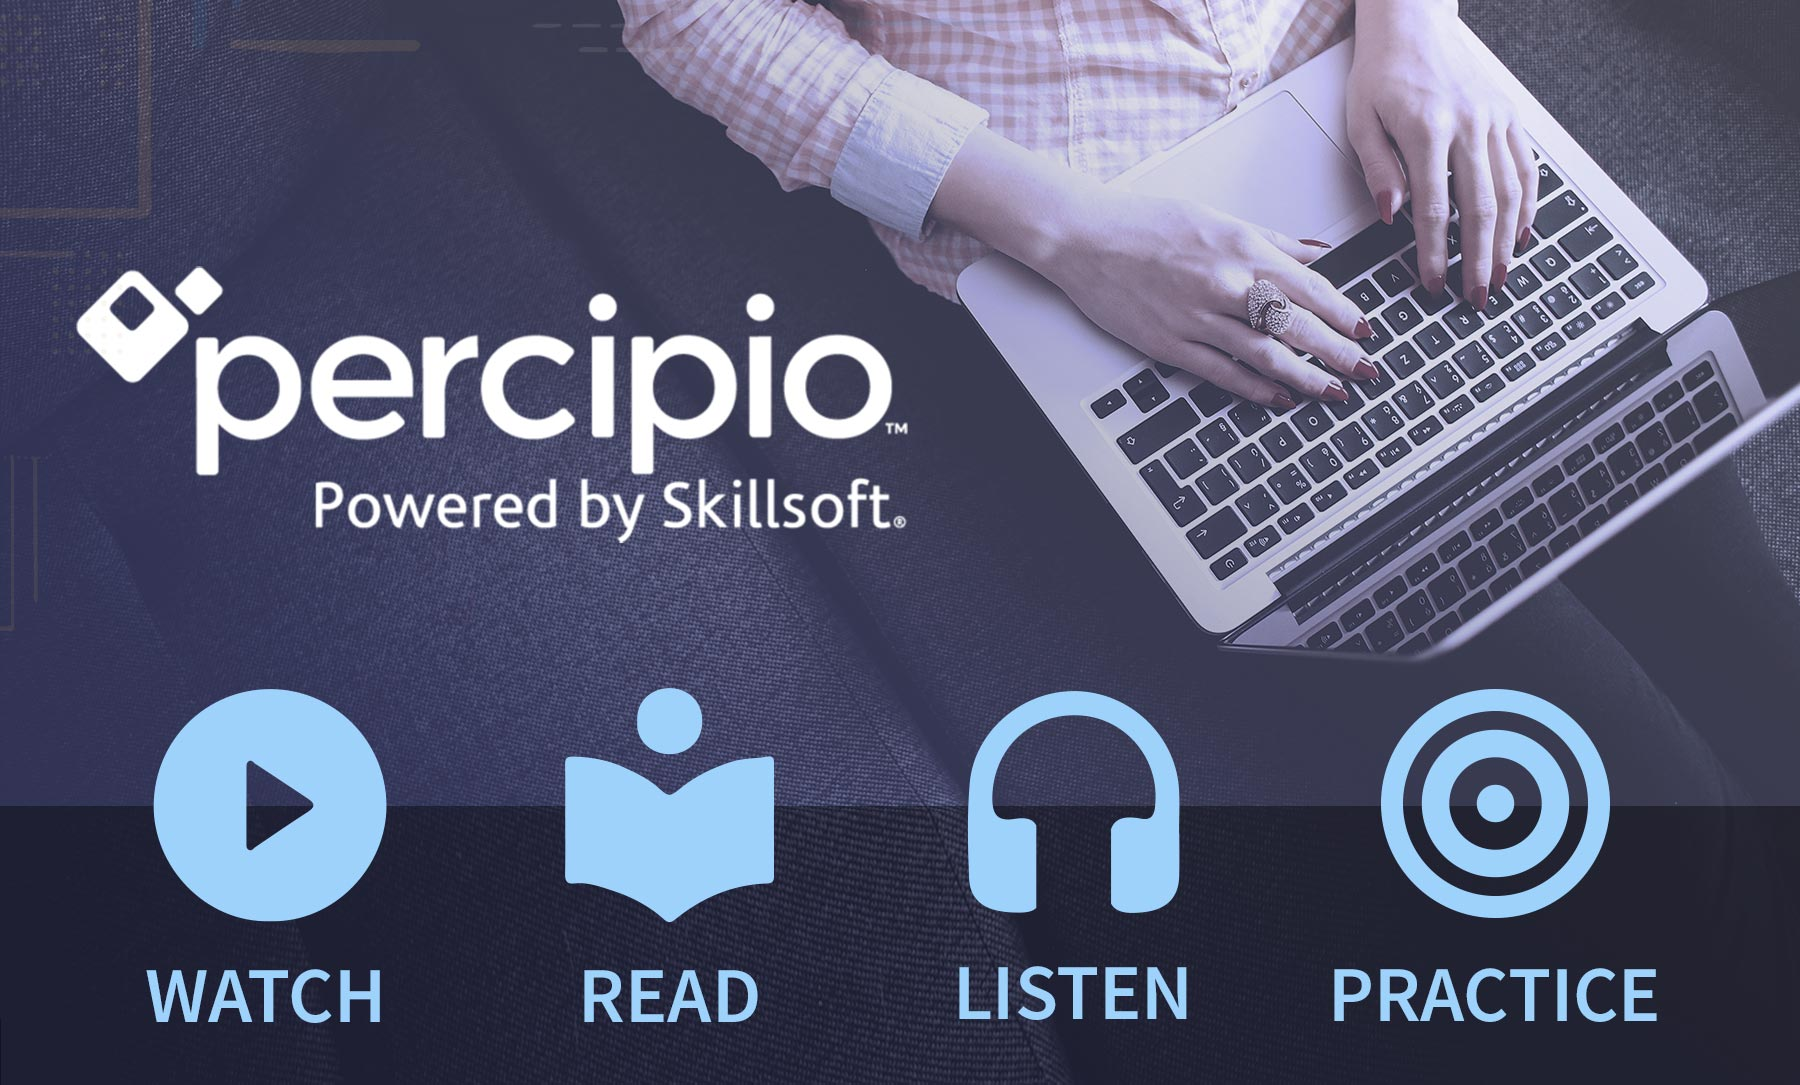 Your employees will watch, read, listen and practice with Percipio